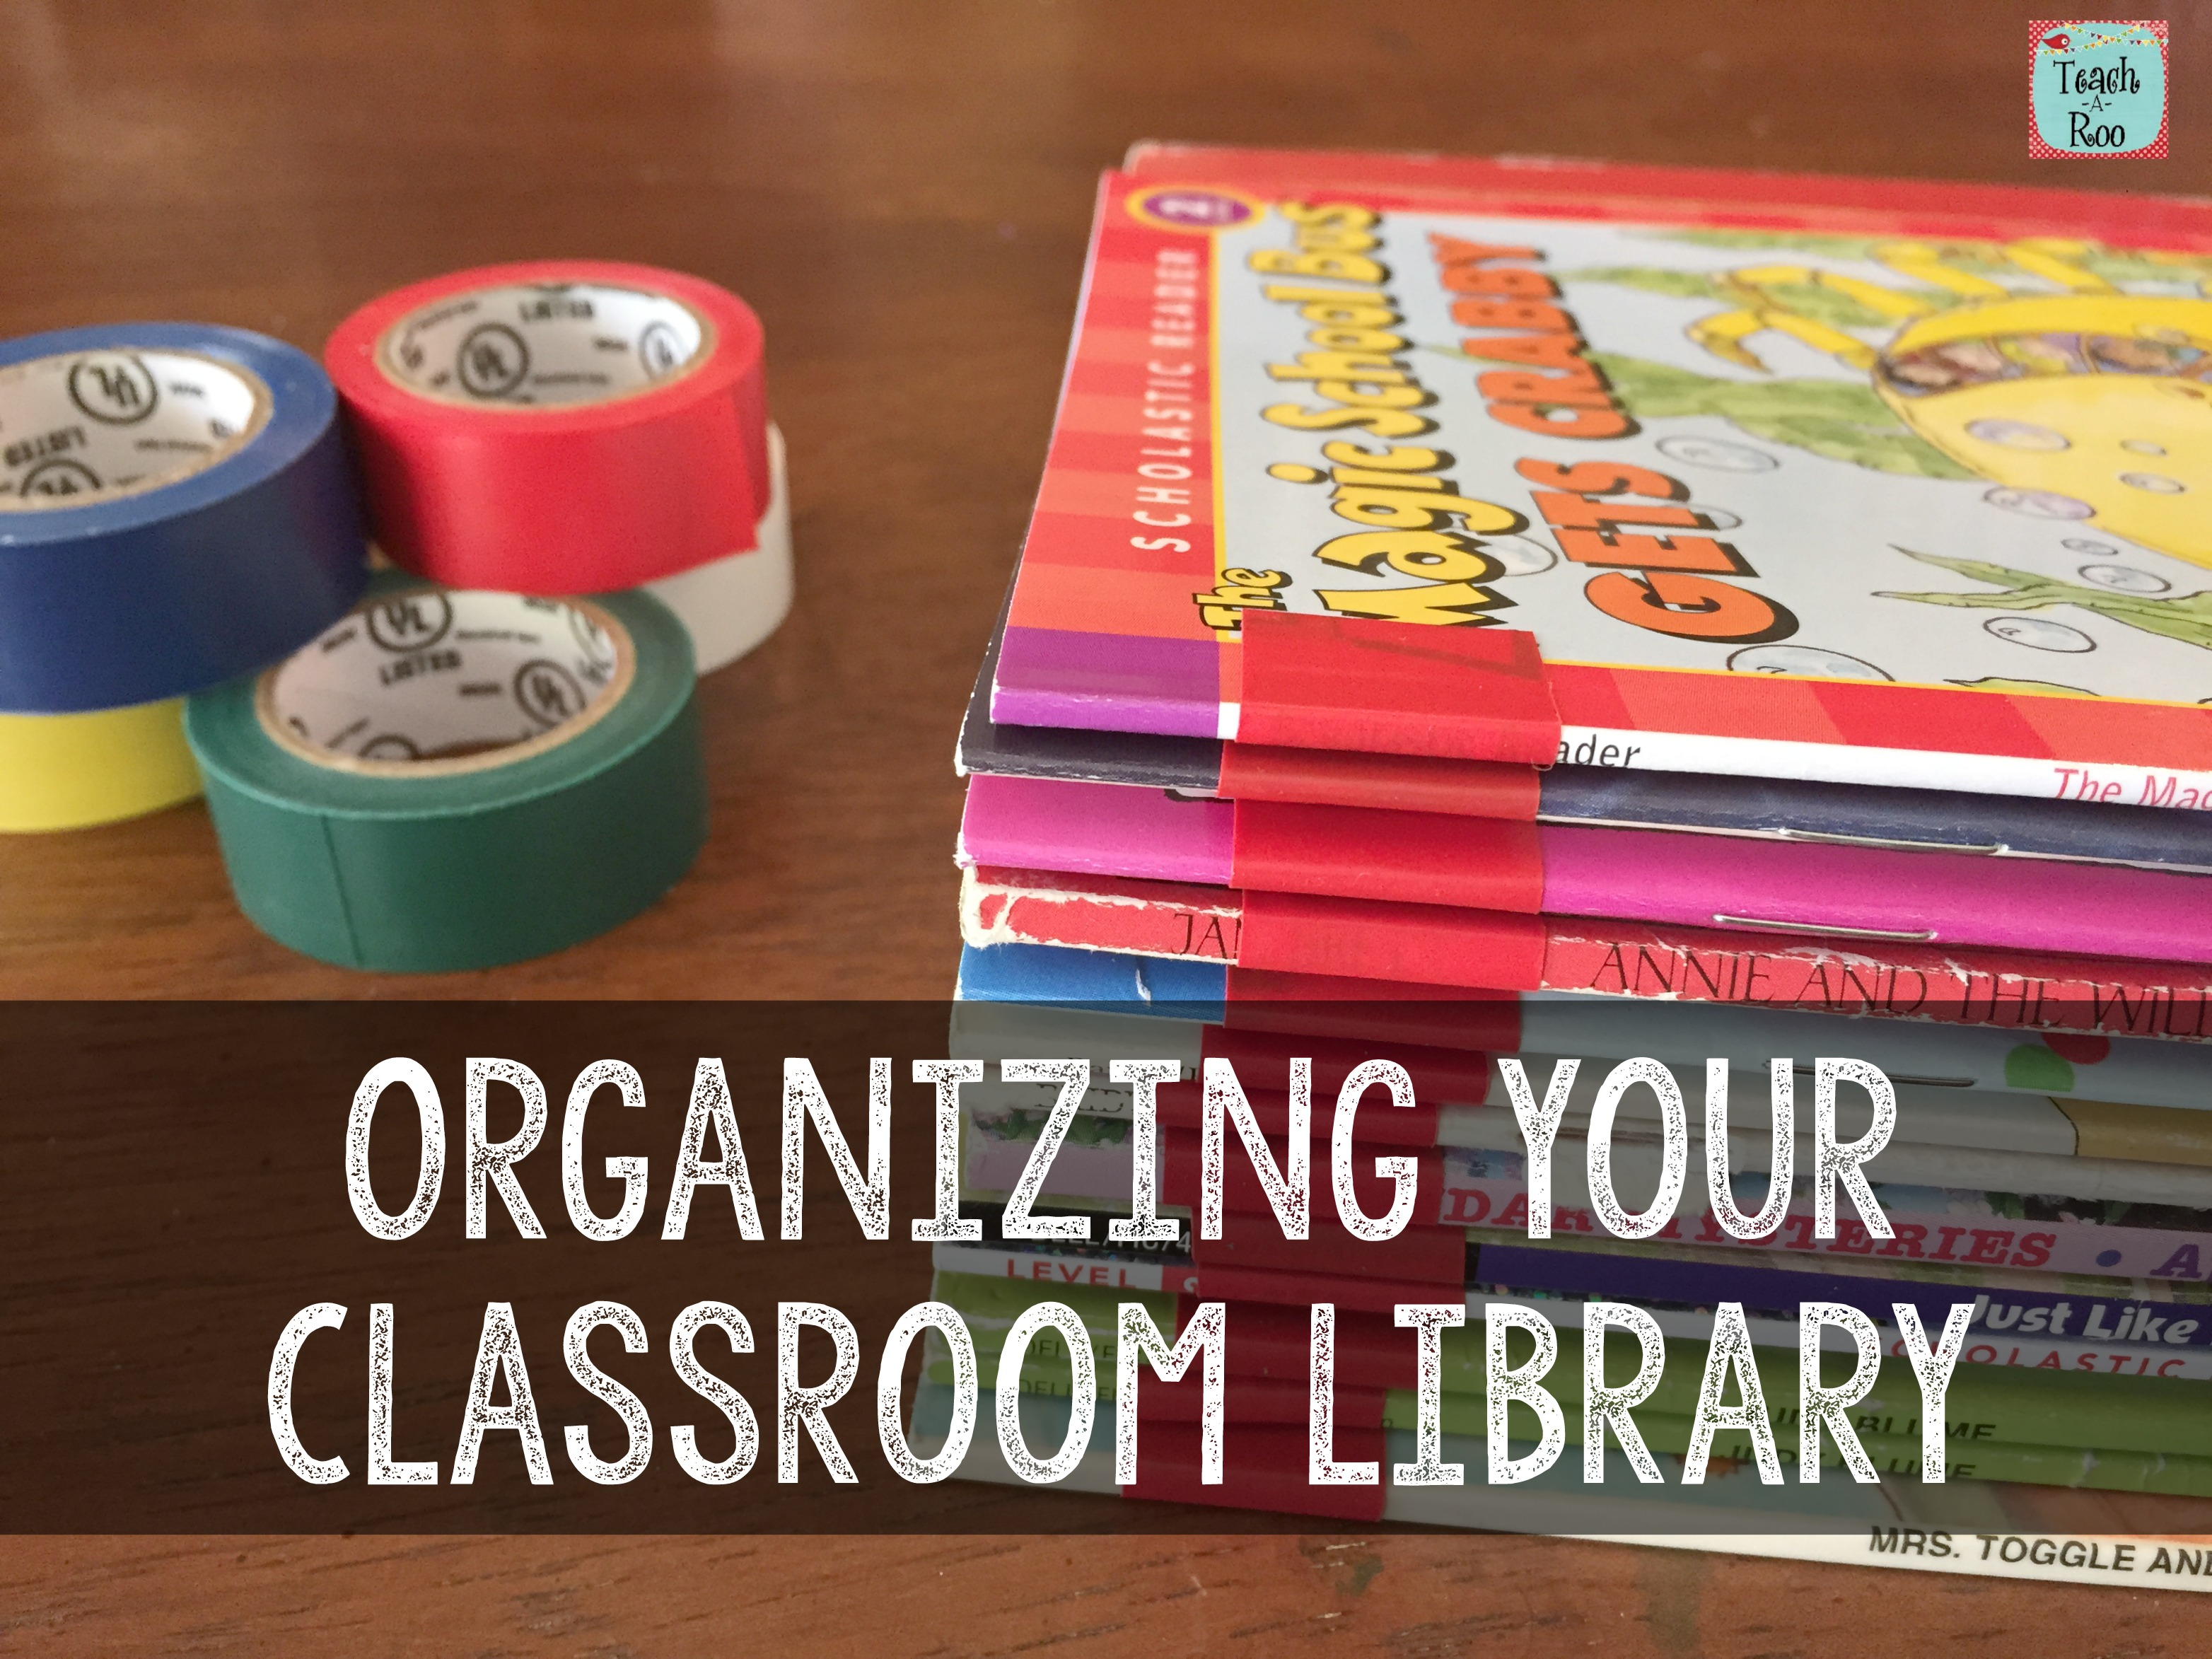 Organizing Your Classroom Library, Part Two